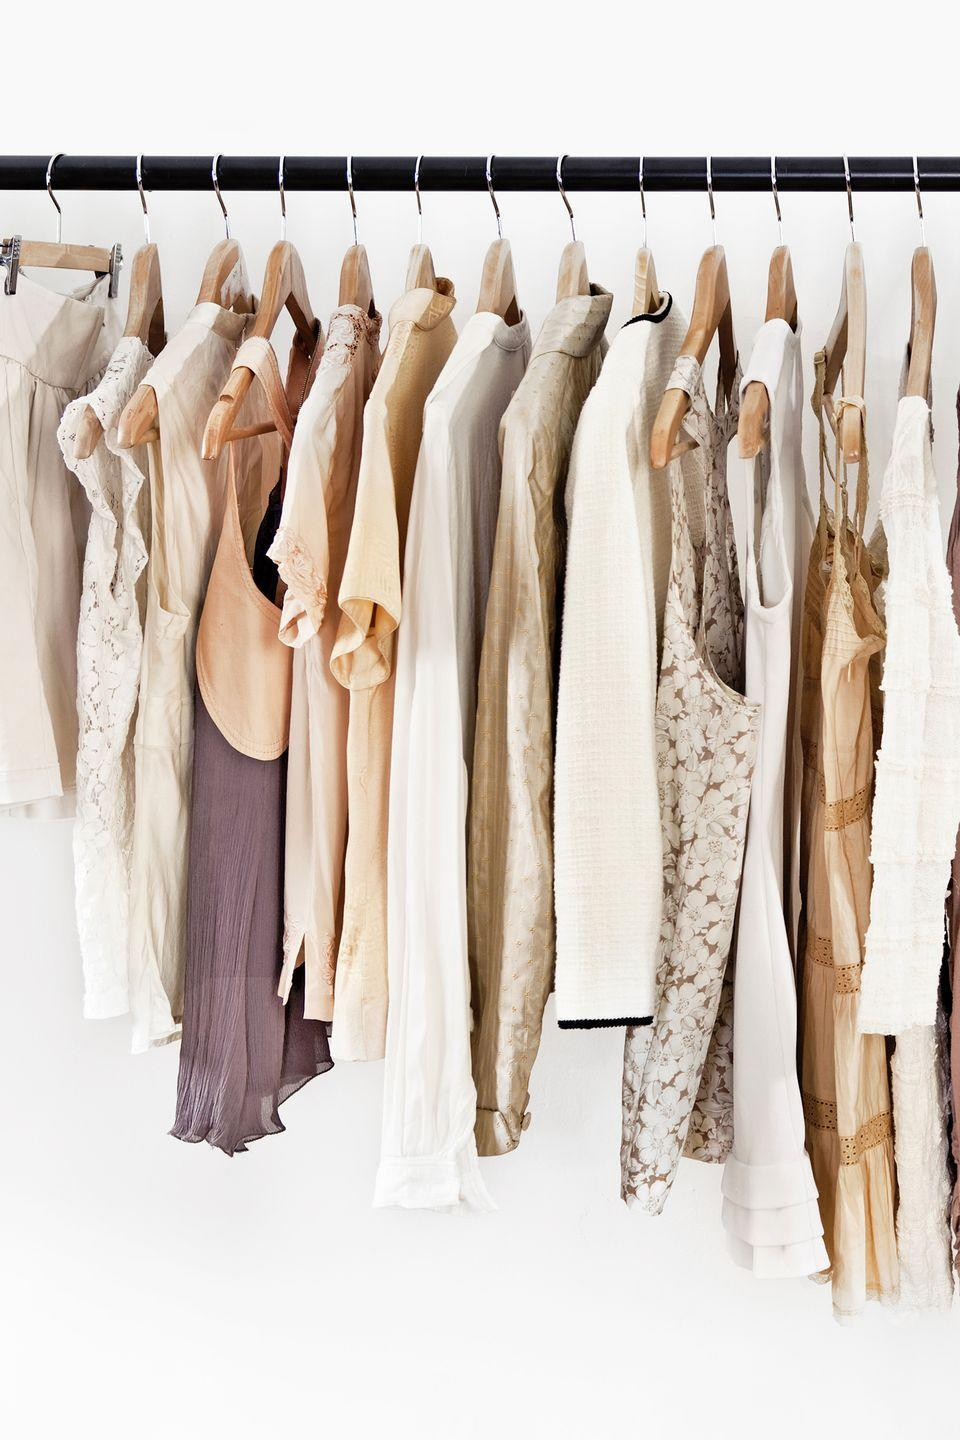 """<p>Start each season by arranging <span class=""""itxtrst itxtrsta itxthook"""">clothes</span> hangers so the hooks face out toward the room, says Kim Cosentino, owner of <a href=""""http://www.declutterbox.com/"""" rel=""""nofollow noopener"""" target=""""_blank"""" data-ylk=""""slk:De-Clutter Box, Inc"""" class=""""link rapid-noclick-resp"""">De-Clutter Box, Inc</a>. in Westmont, Illinois. When you wear something, turn the hanger the other way. At the end of the season, get rid of anything that hasn't been turned.</p><p><strong><a class=""""link rapid-noclick-resp"""" href=""""https://www.amazon.com/Home-Pack-Natural-wood-hangers/dp/B00QPFORNK/ref=sr_1_1_sspa?dchild=1&keywords=WOODEN+HANGERS&qid=1610555782&sr=8-1-spons&psc=1&spLa=ZW5jcnlwdGVkUXVhbGlmaWVyPUEyRDlMMEhSVllZWFkxJmVuY3J5cHRlZElkPUEwMDEzMDgyMlVQSUxNS0M1RUVMUSZlbmNyeXB0ZWRBZElkPUEwNjgxMjY5M1U3MTJUNkhBMjdBSiZ3aWRnZXROYW1lPXNwX2F0ZiZhY3Rpb249Y2xpY2tSZWRpcmVjdCZkb05vdExvZ0NsaWNrPXRydWU%3D&tag=syn-yahoo-20&ascsubtag=%5Bartid%7C10070.g.3310%5Bsrc%7Cyahoo-us"""" rel=""""nofollow noopener"""" target=""""_blank"""" data-ylk=""""slk:SHOP HANGERS"""">SHOP HANGERS</a></strong></p>"""